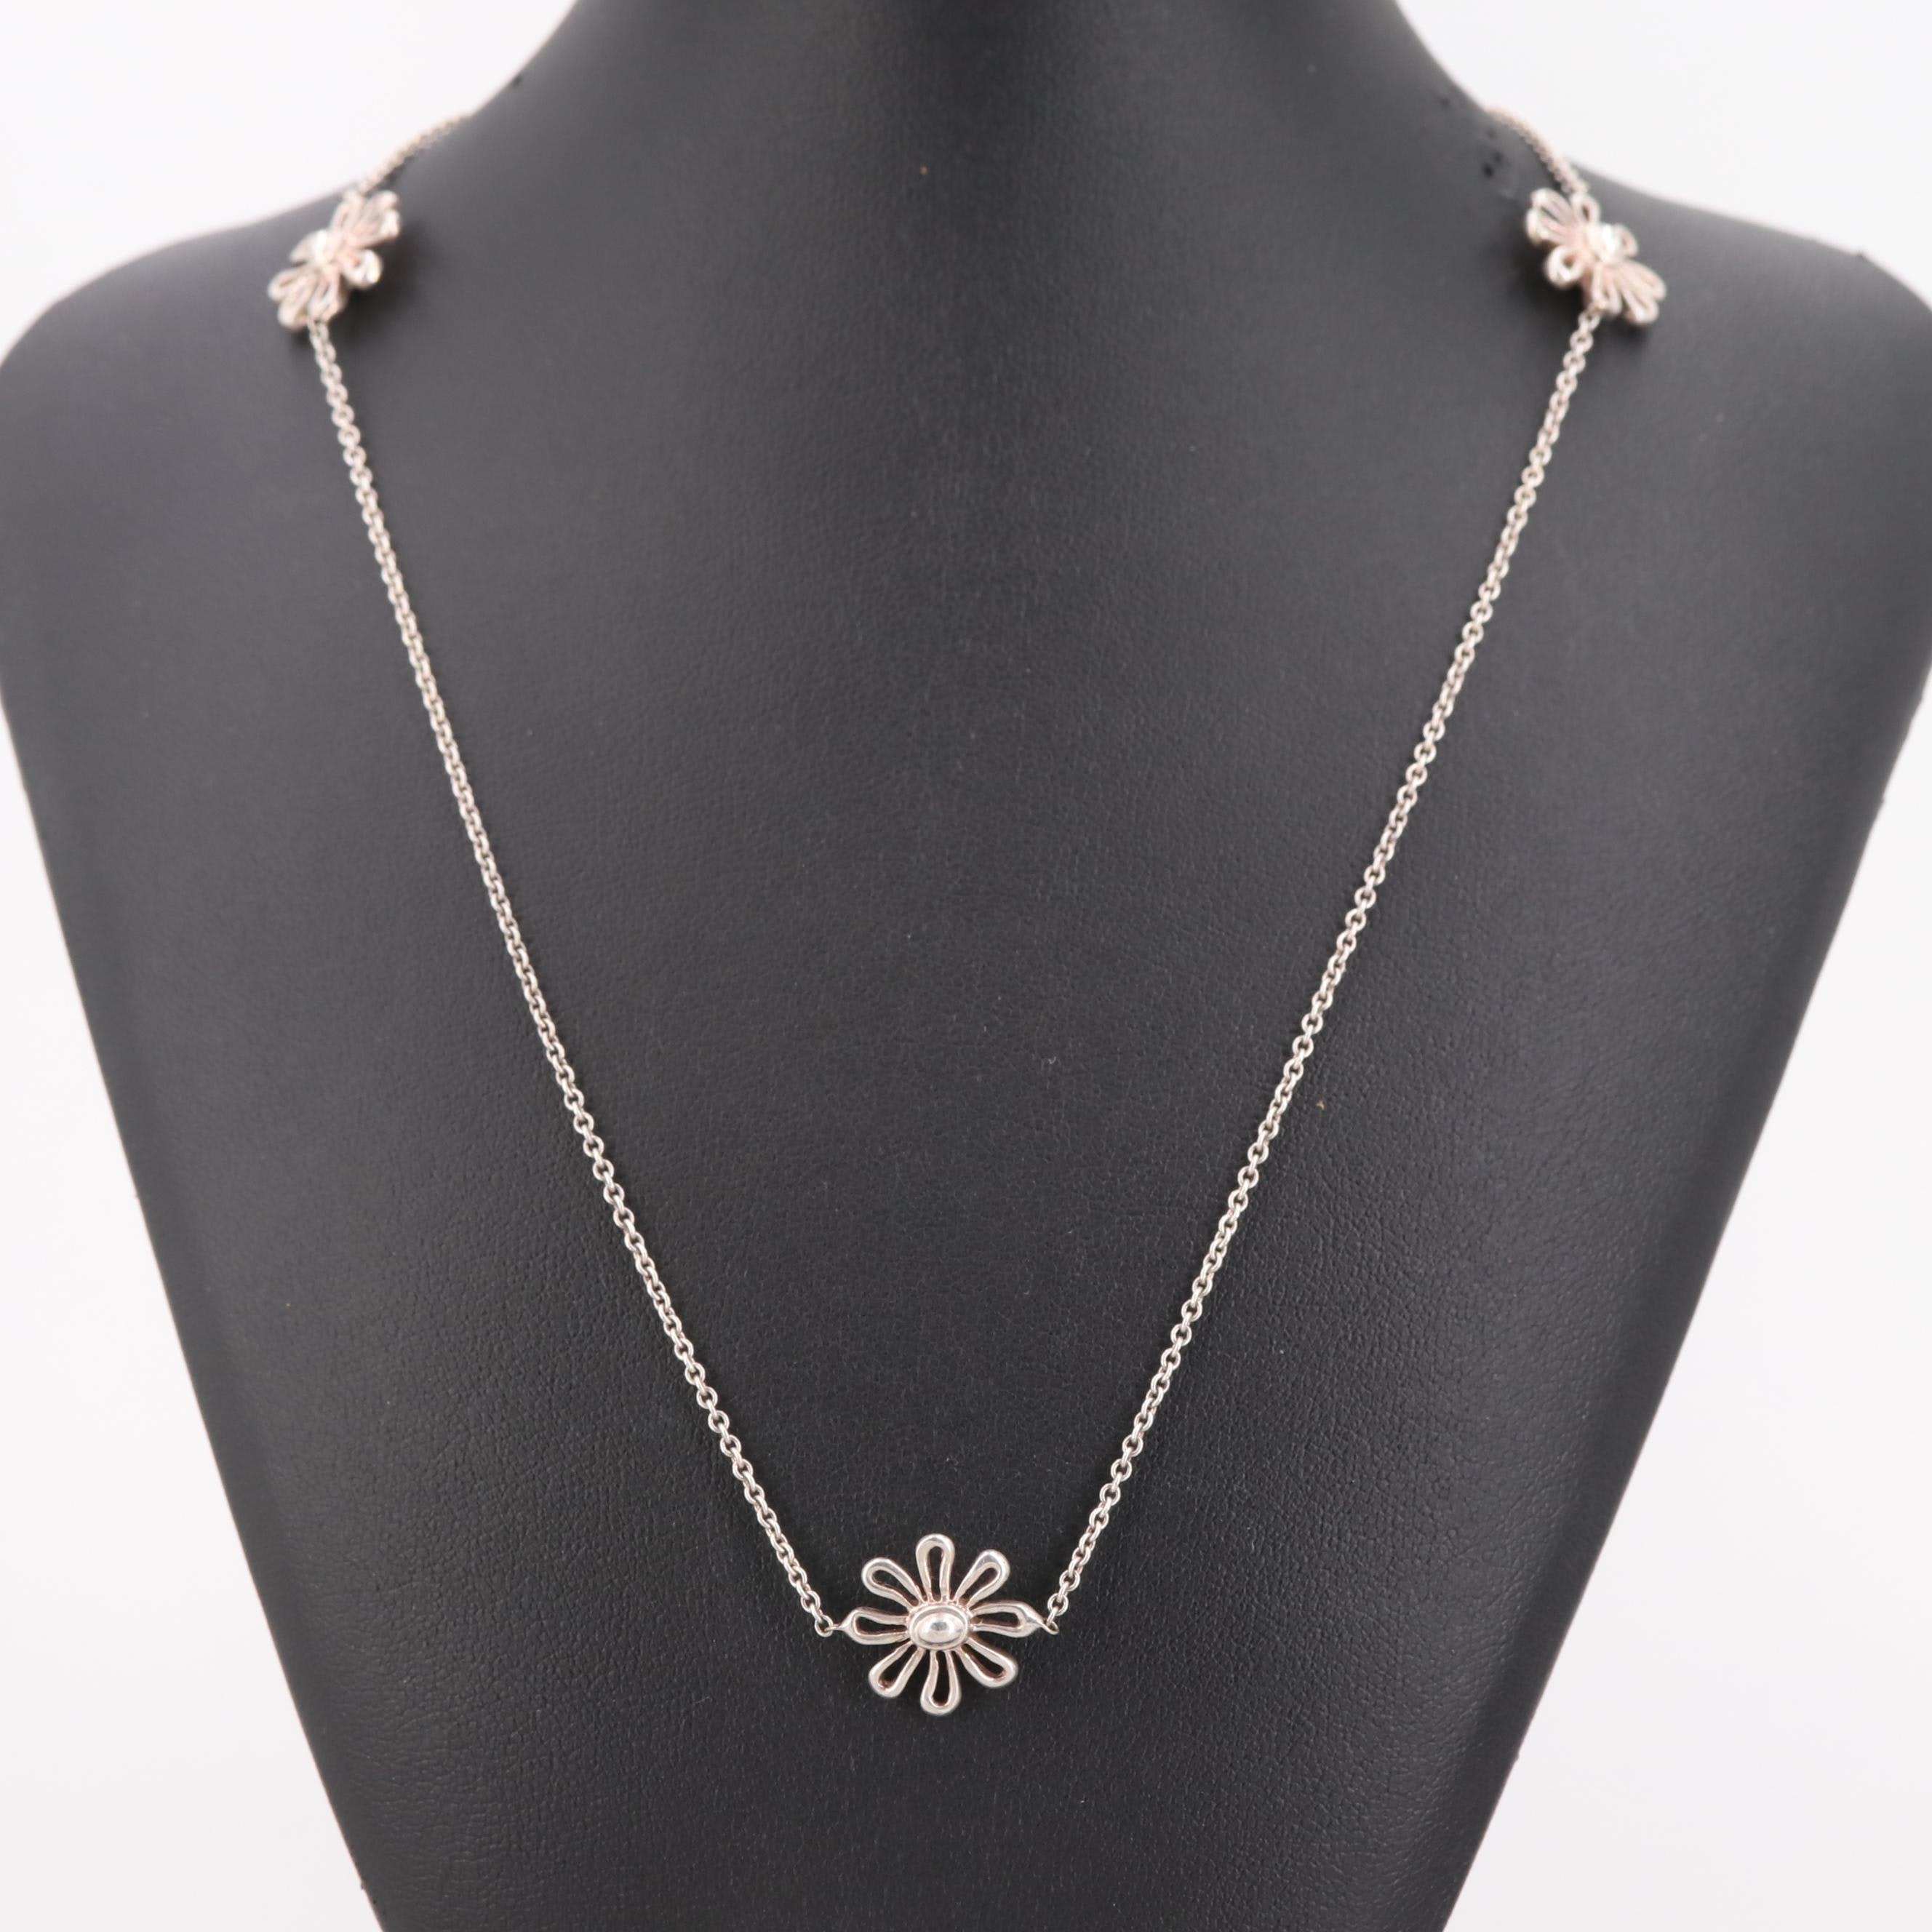 Paloma Picasso for Tiffany & Co. Sterling Silver Flower Station Necklace